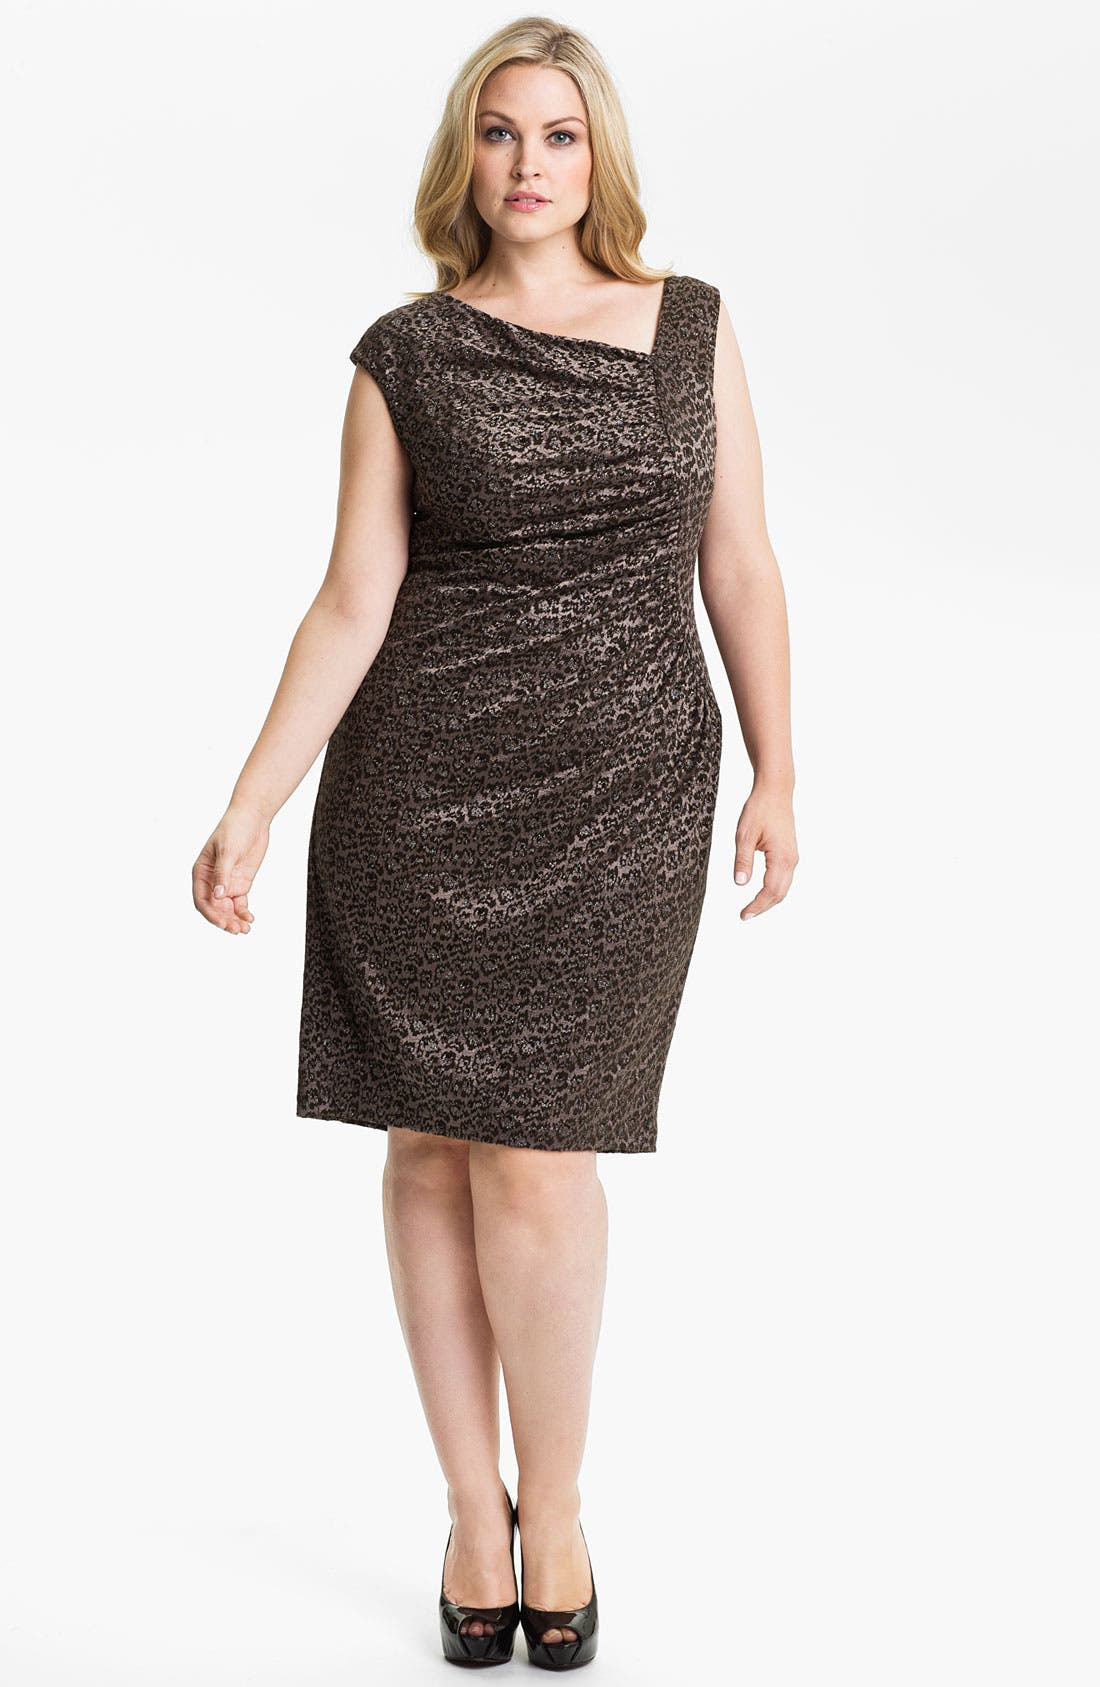 Alternate Image 1 Selected - Adrianna Papell Side Ruched Metallic Sheath Dress (Plus)